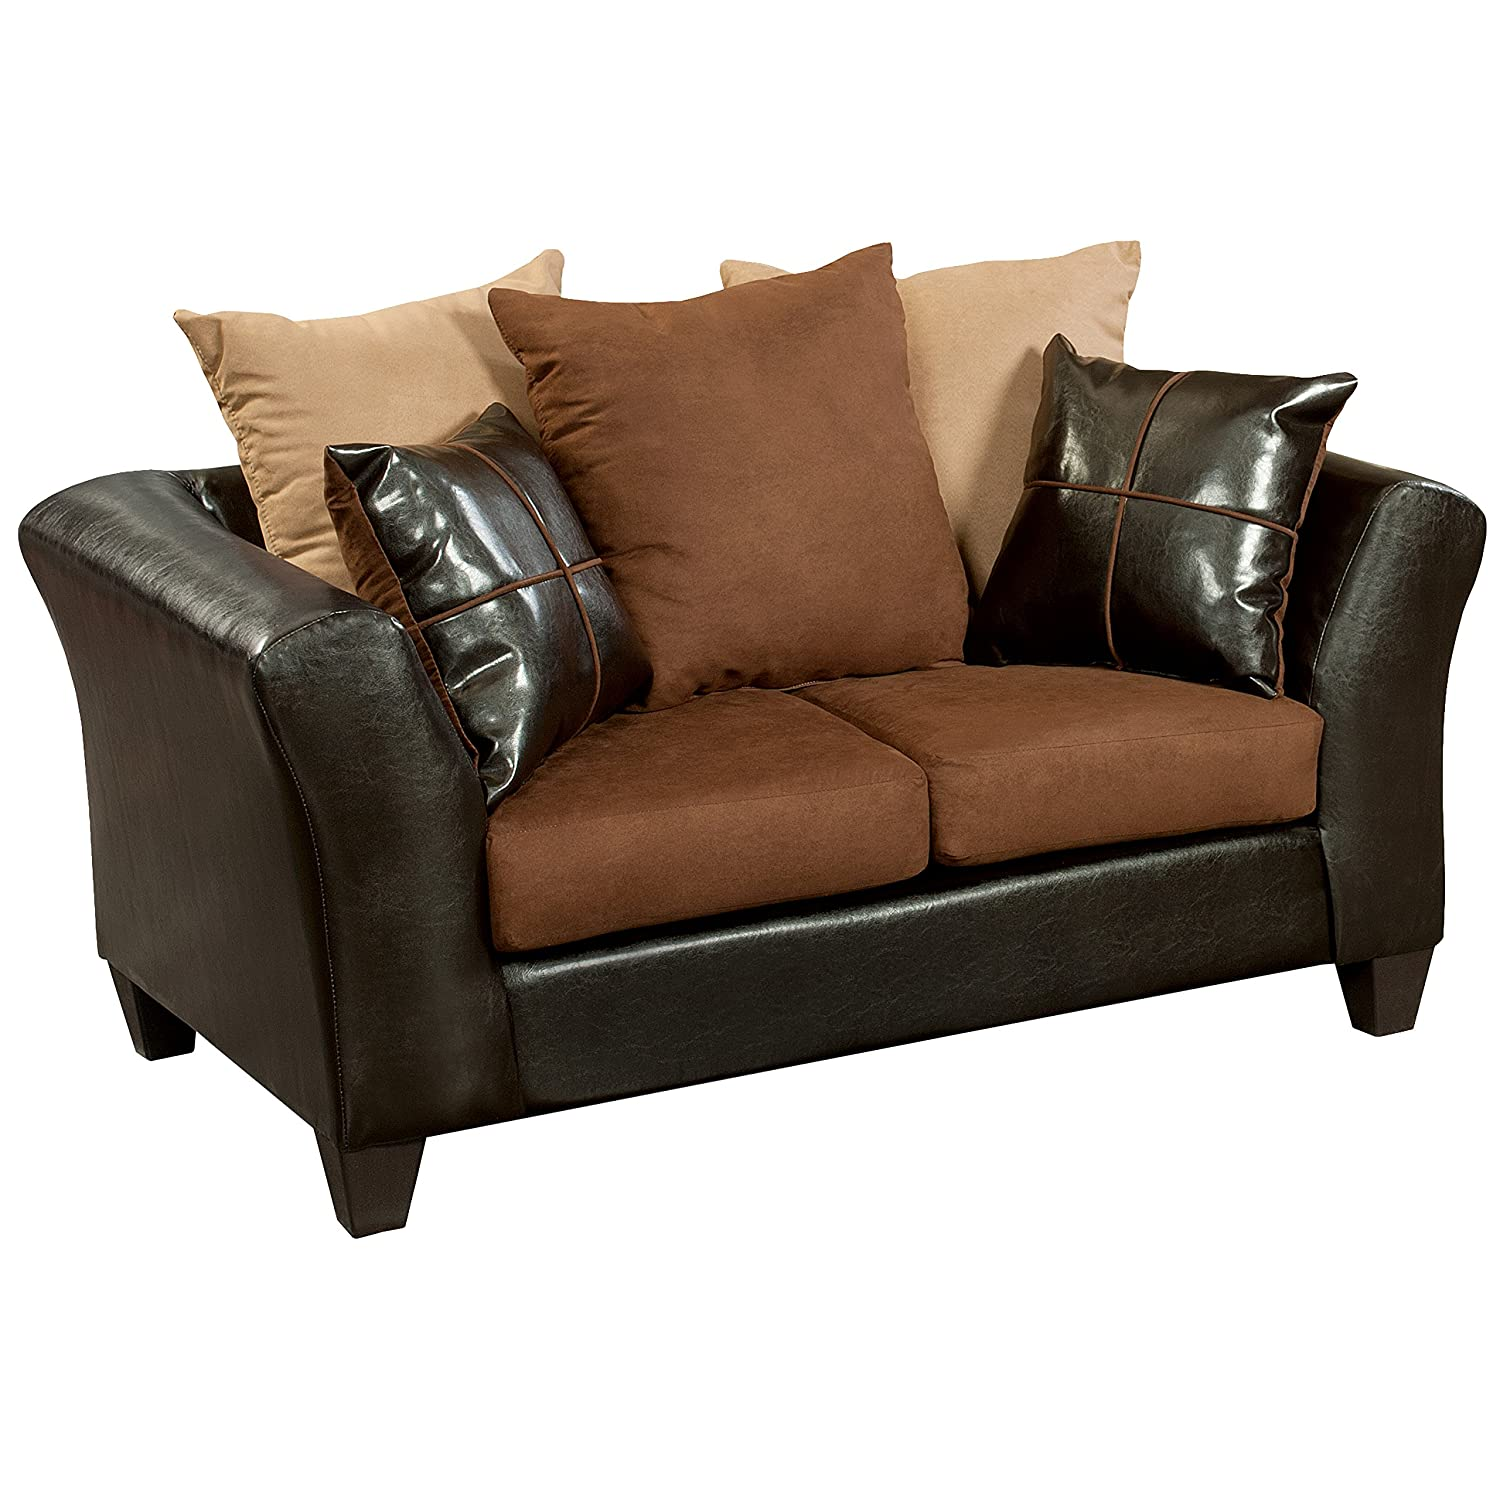 Flash Furniture Riverstone Sierra Chocolate Microfiber Loveseat - Brown